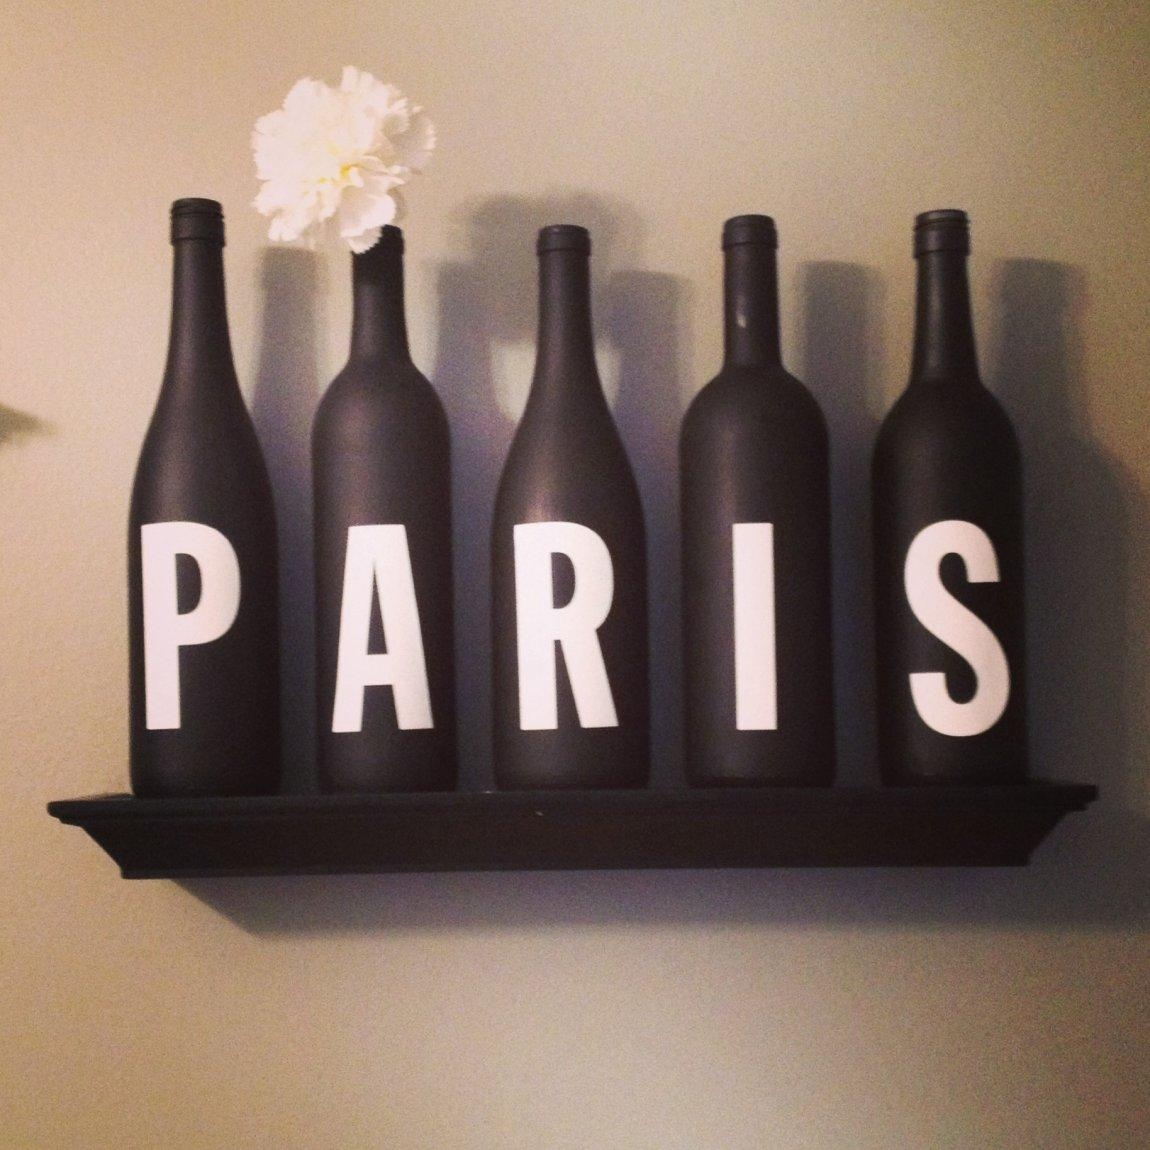 Paris Themed Wall Decals Curtains Room Decor Ideas Within Paris Themed Stickers (View 19 of 20)